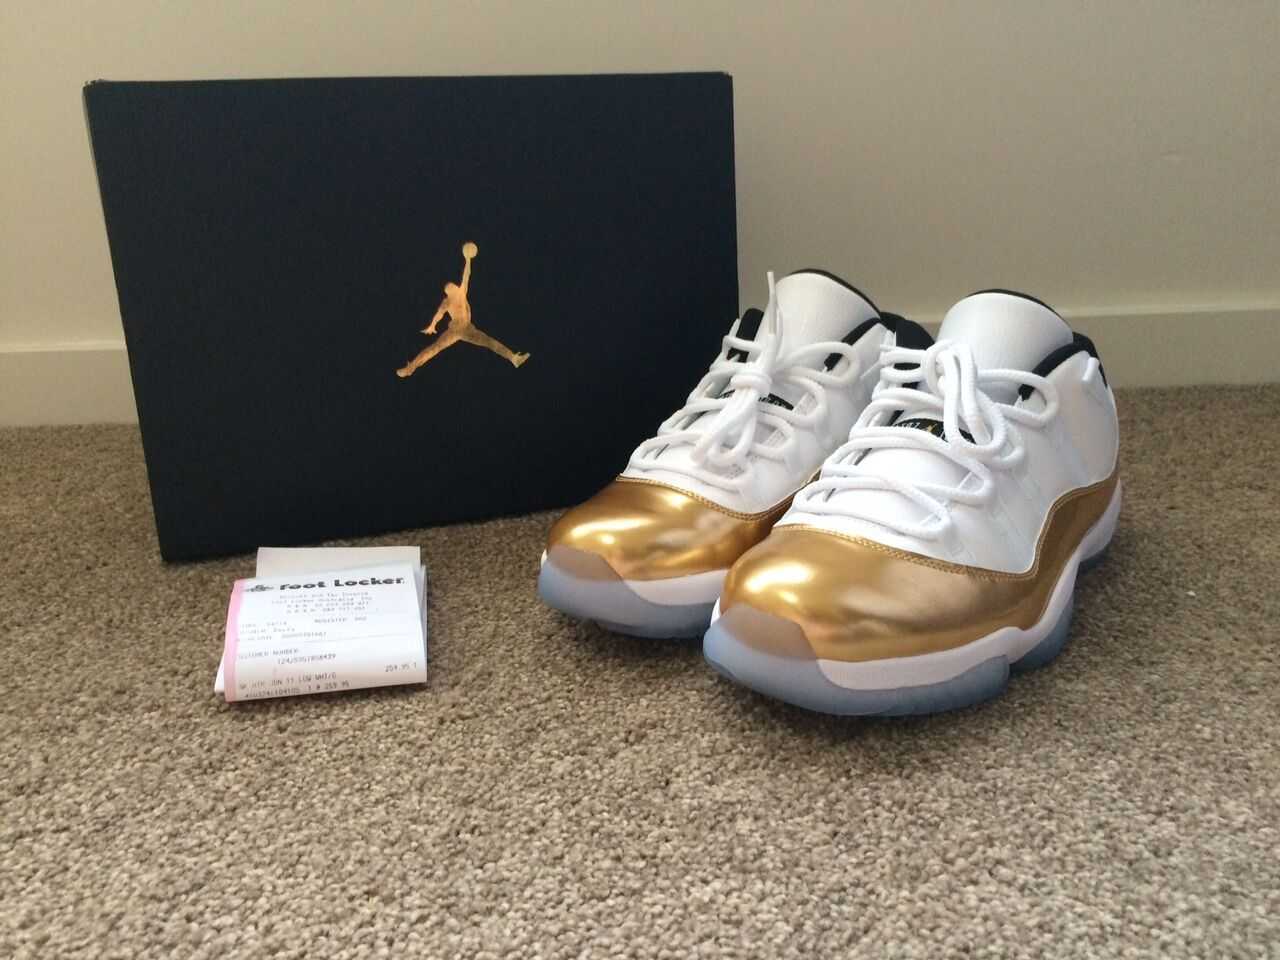 Air Jordan XI 11 Low Metallic Gold  Closing Ceremony Ceremony Ceremony  10.5 US 1fb622